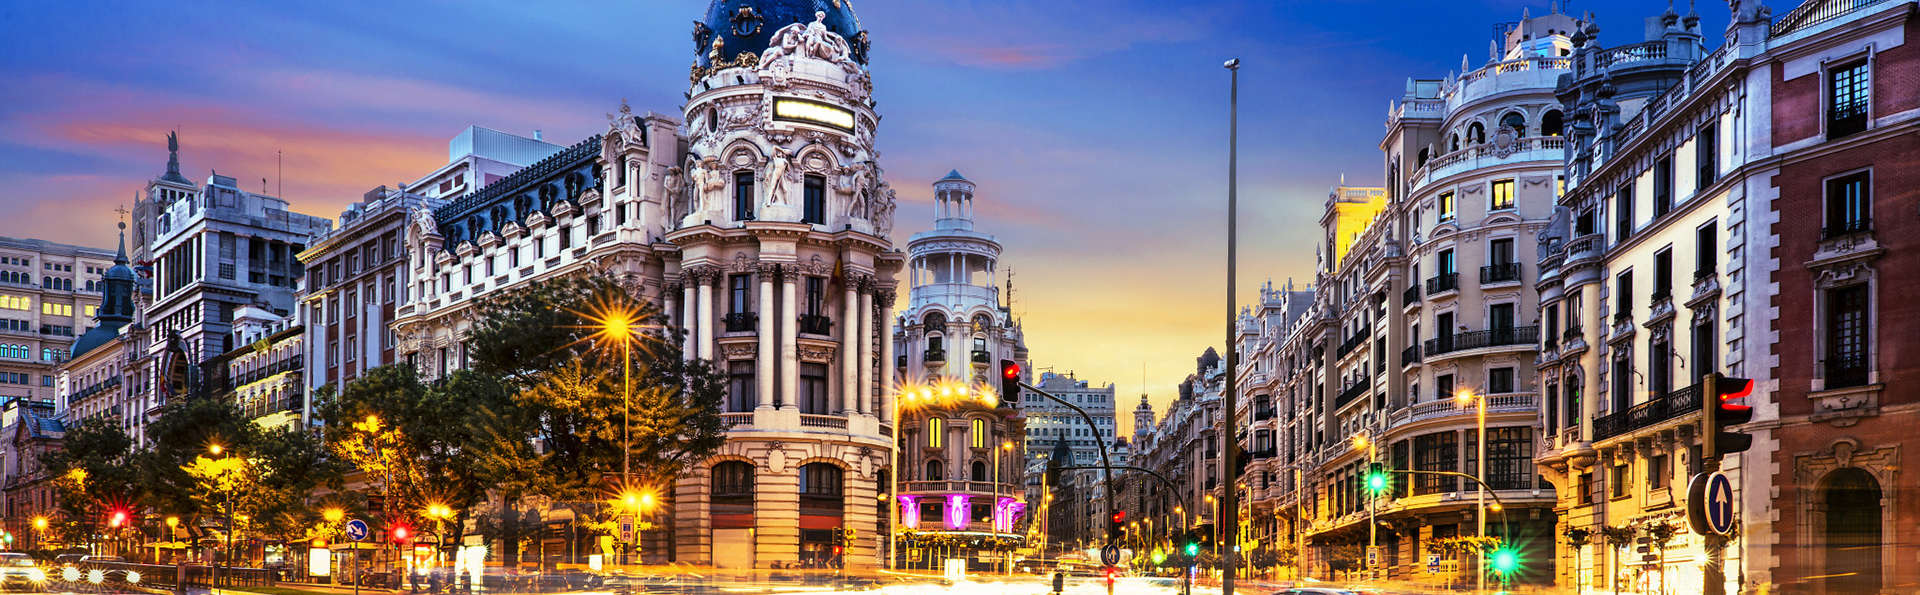 Hotel Sterling - edit_MADRID1.jpg